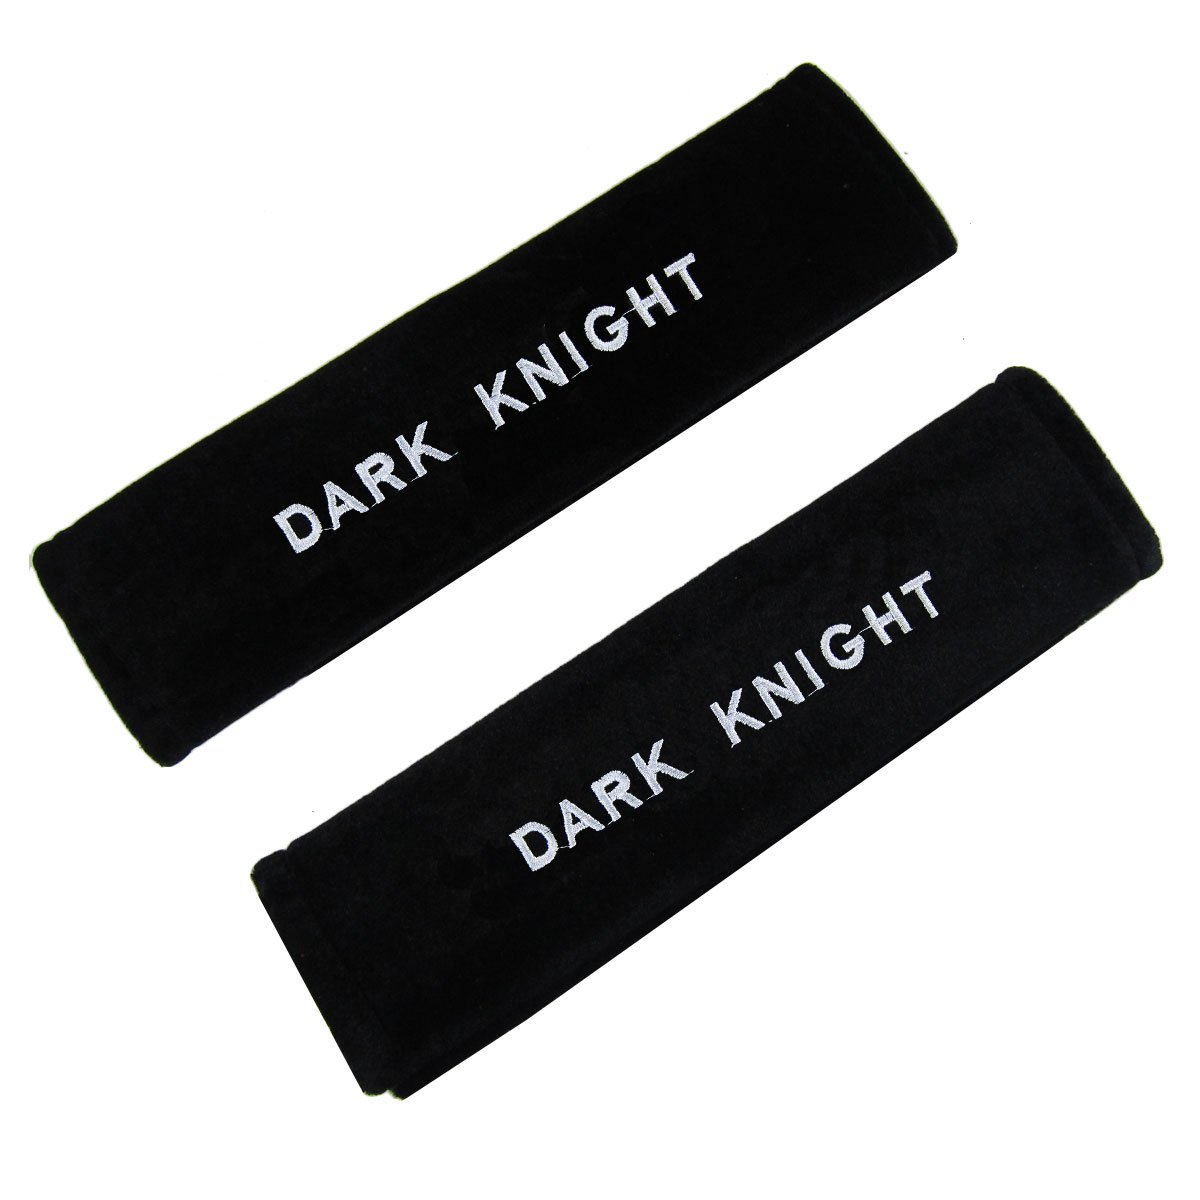 Pair of Officially Licensed DC Comics Seat Belt Pads - Dark Knight BDK